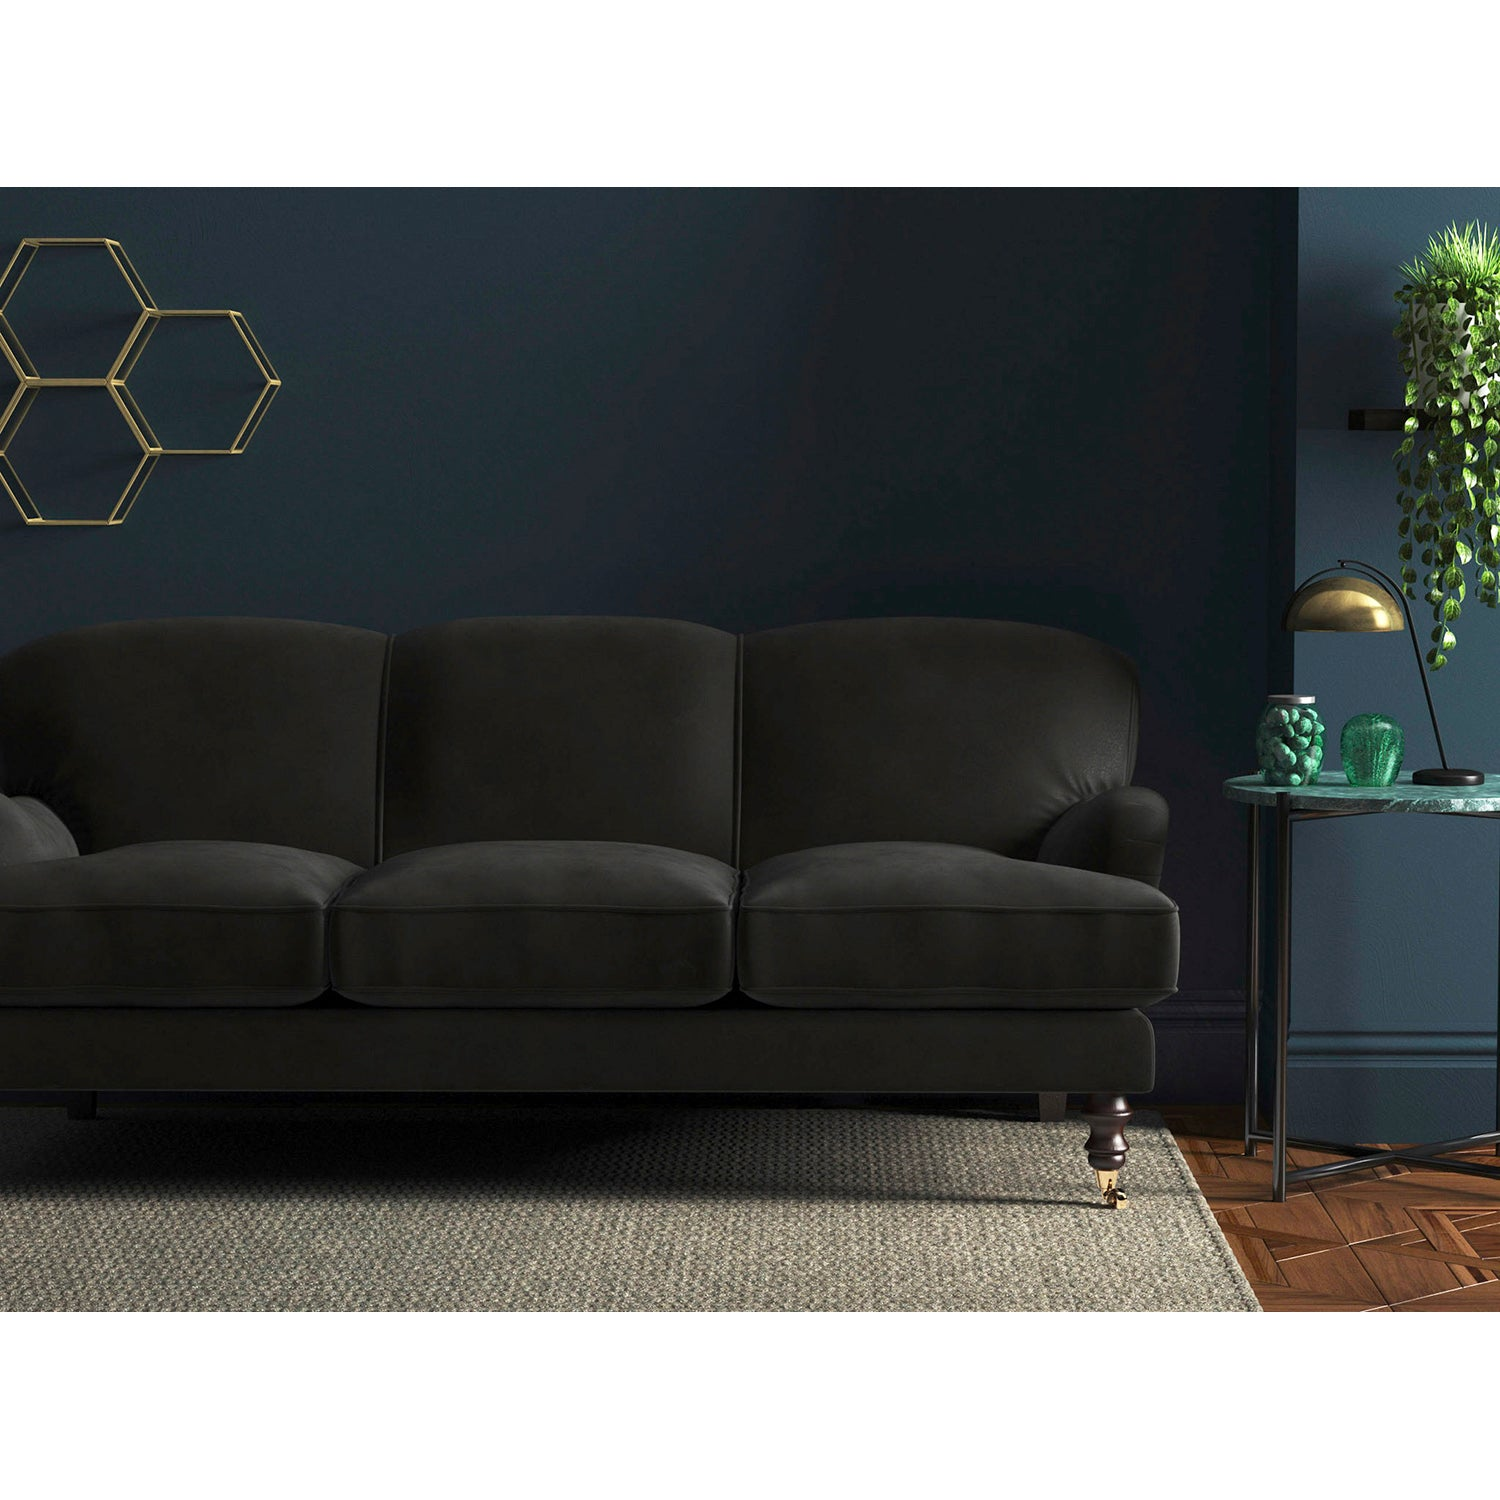 Sofa in a plain dark grey velvet upholstery fabric with a stain resistant finish